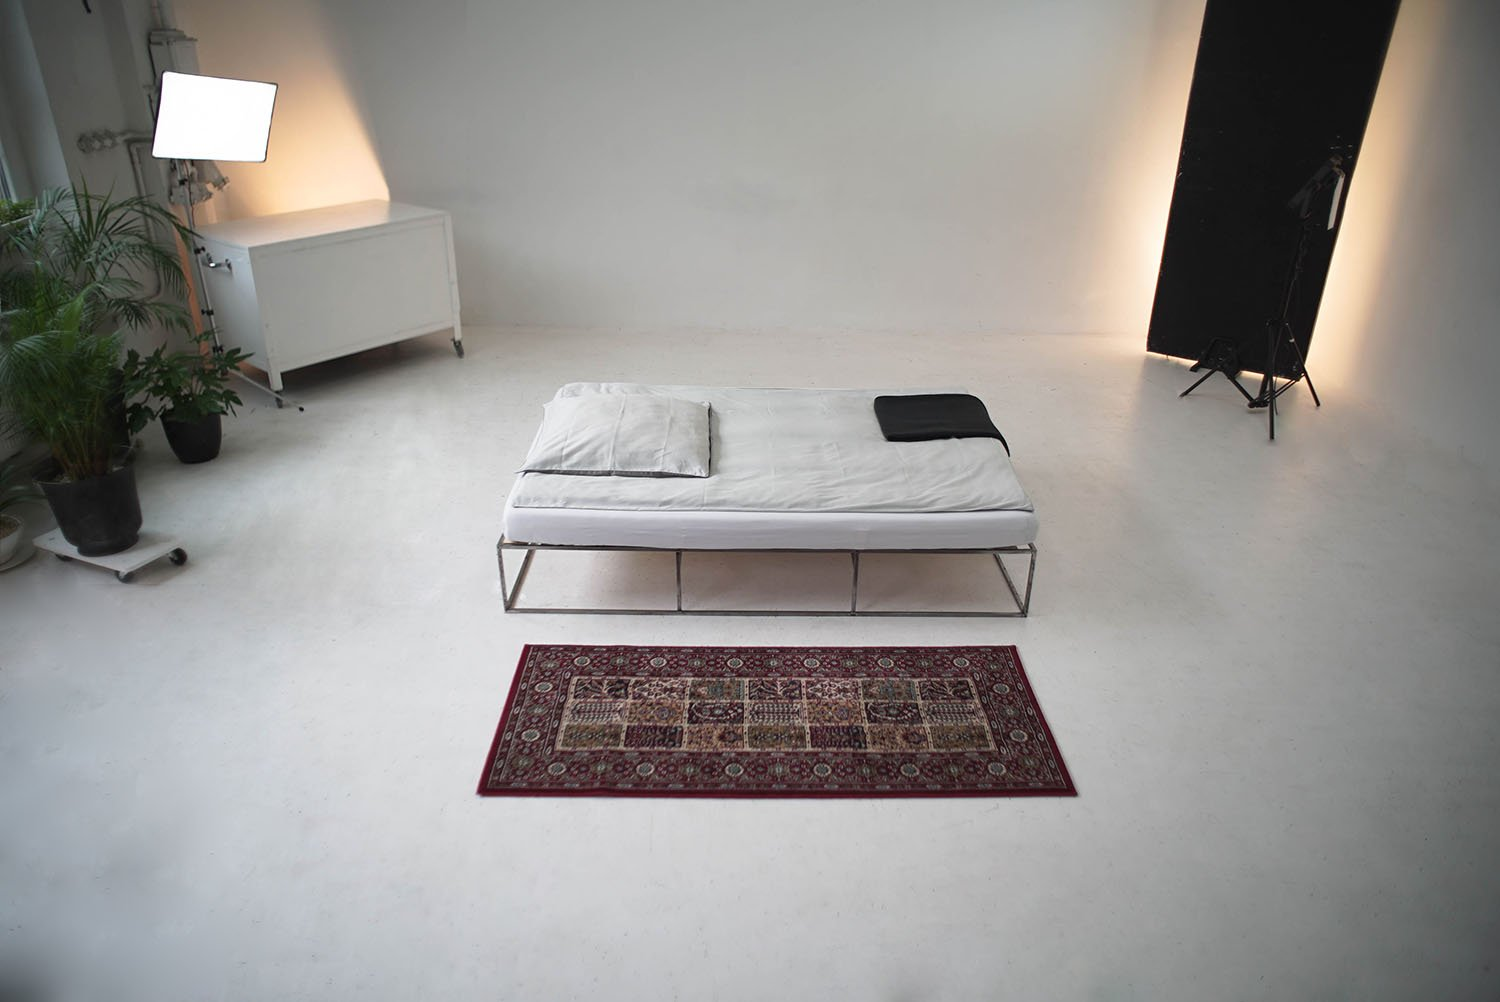 iGNANT_Design_Tatkraft_ION_Bed_3